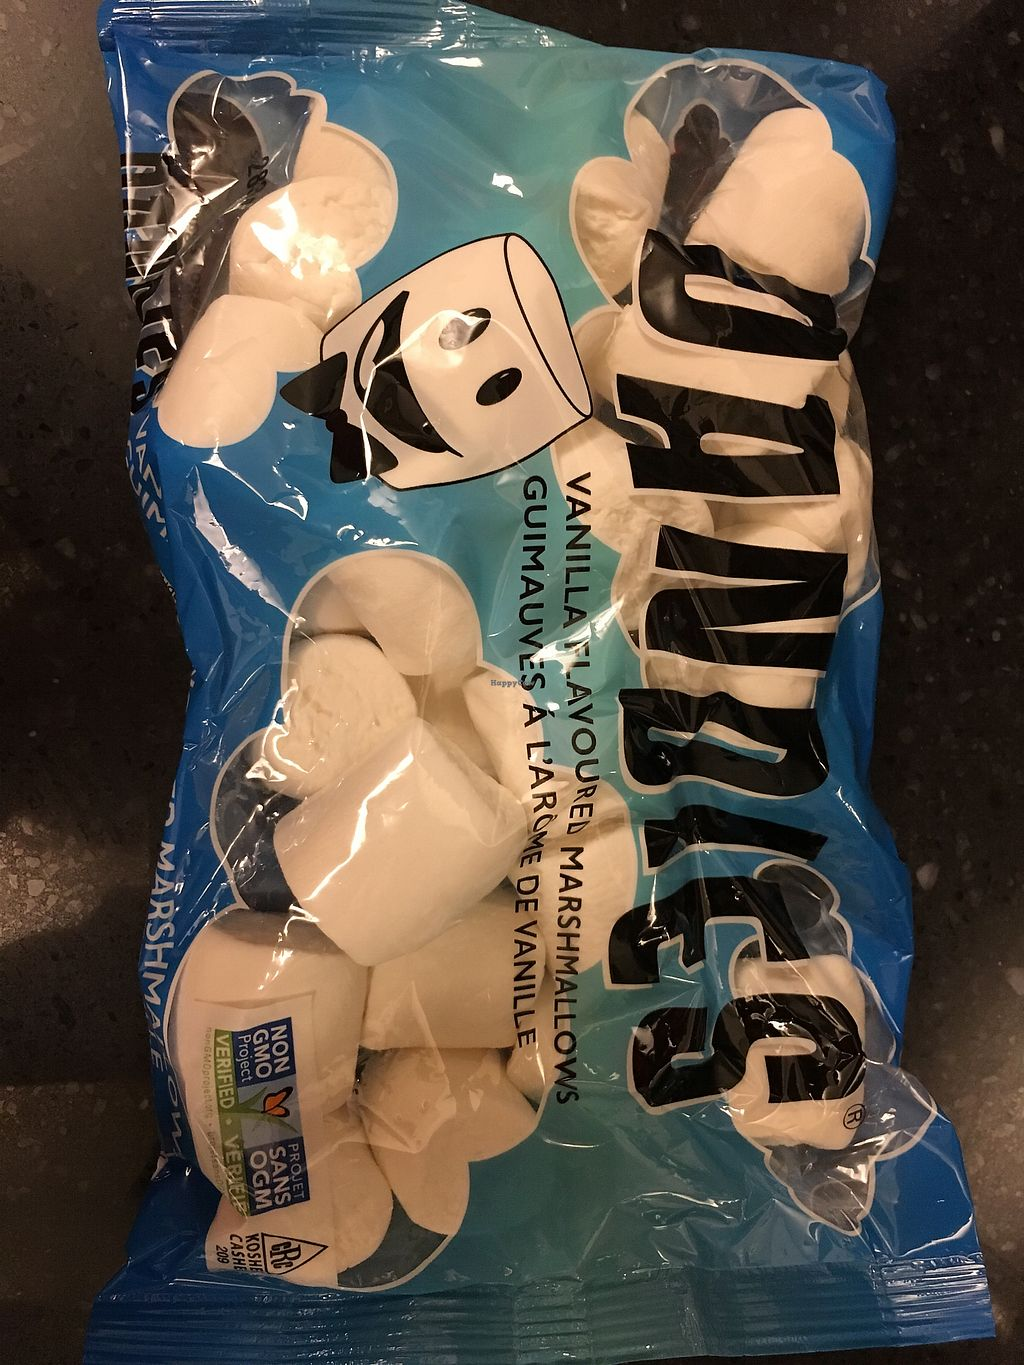 """Photo of Vegan Supply  by <a href=""""/members/profile/Siup"""">Siup</a> <br/>Vegan marshmallow  <br/> December 6, 2017  - <a href='/contact/abuse/image/59337/332964'>Report</a>"""